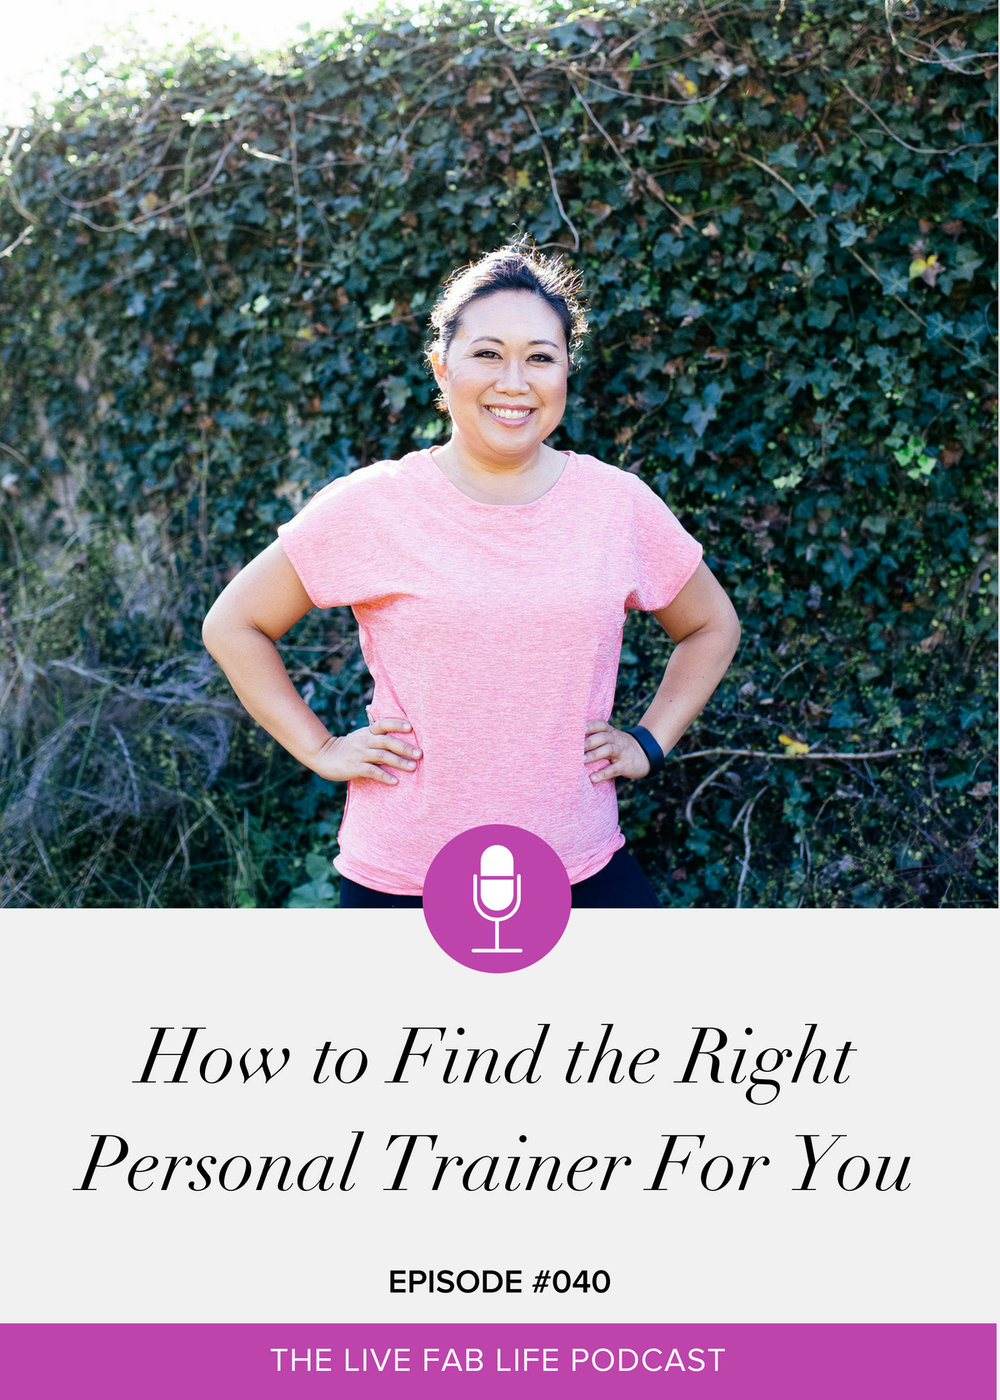 Episode 040: How to Find the Right Personal Trainer For You